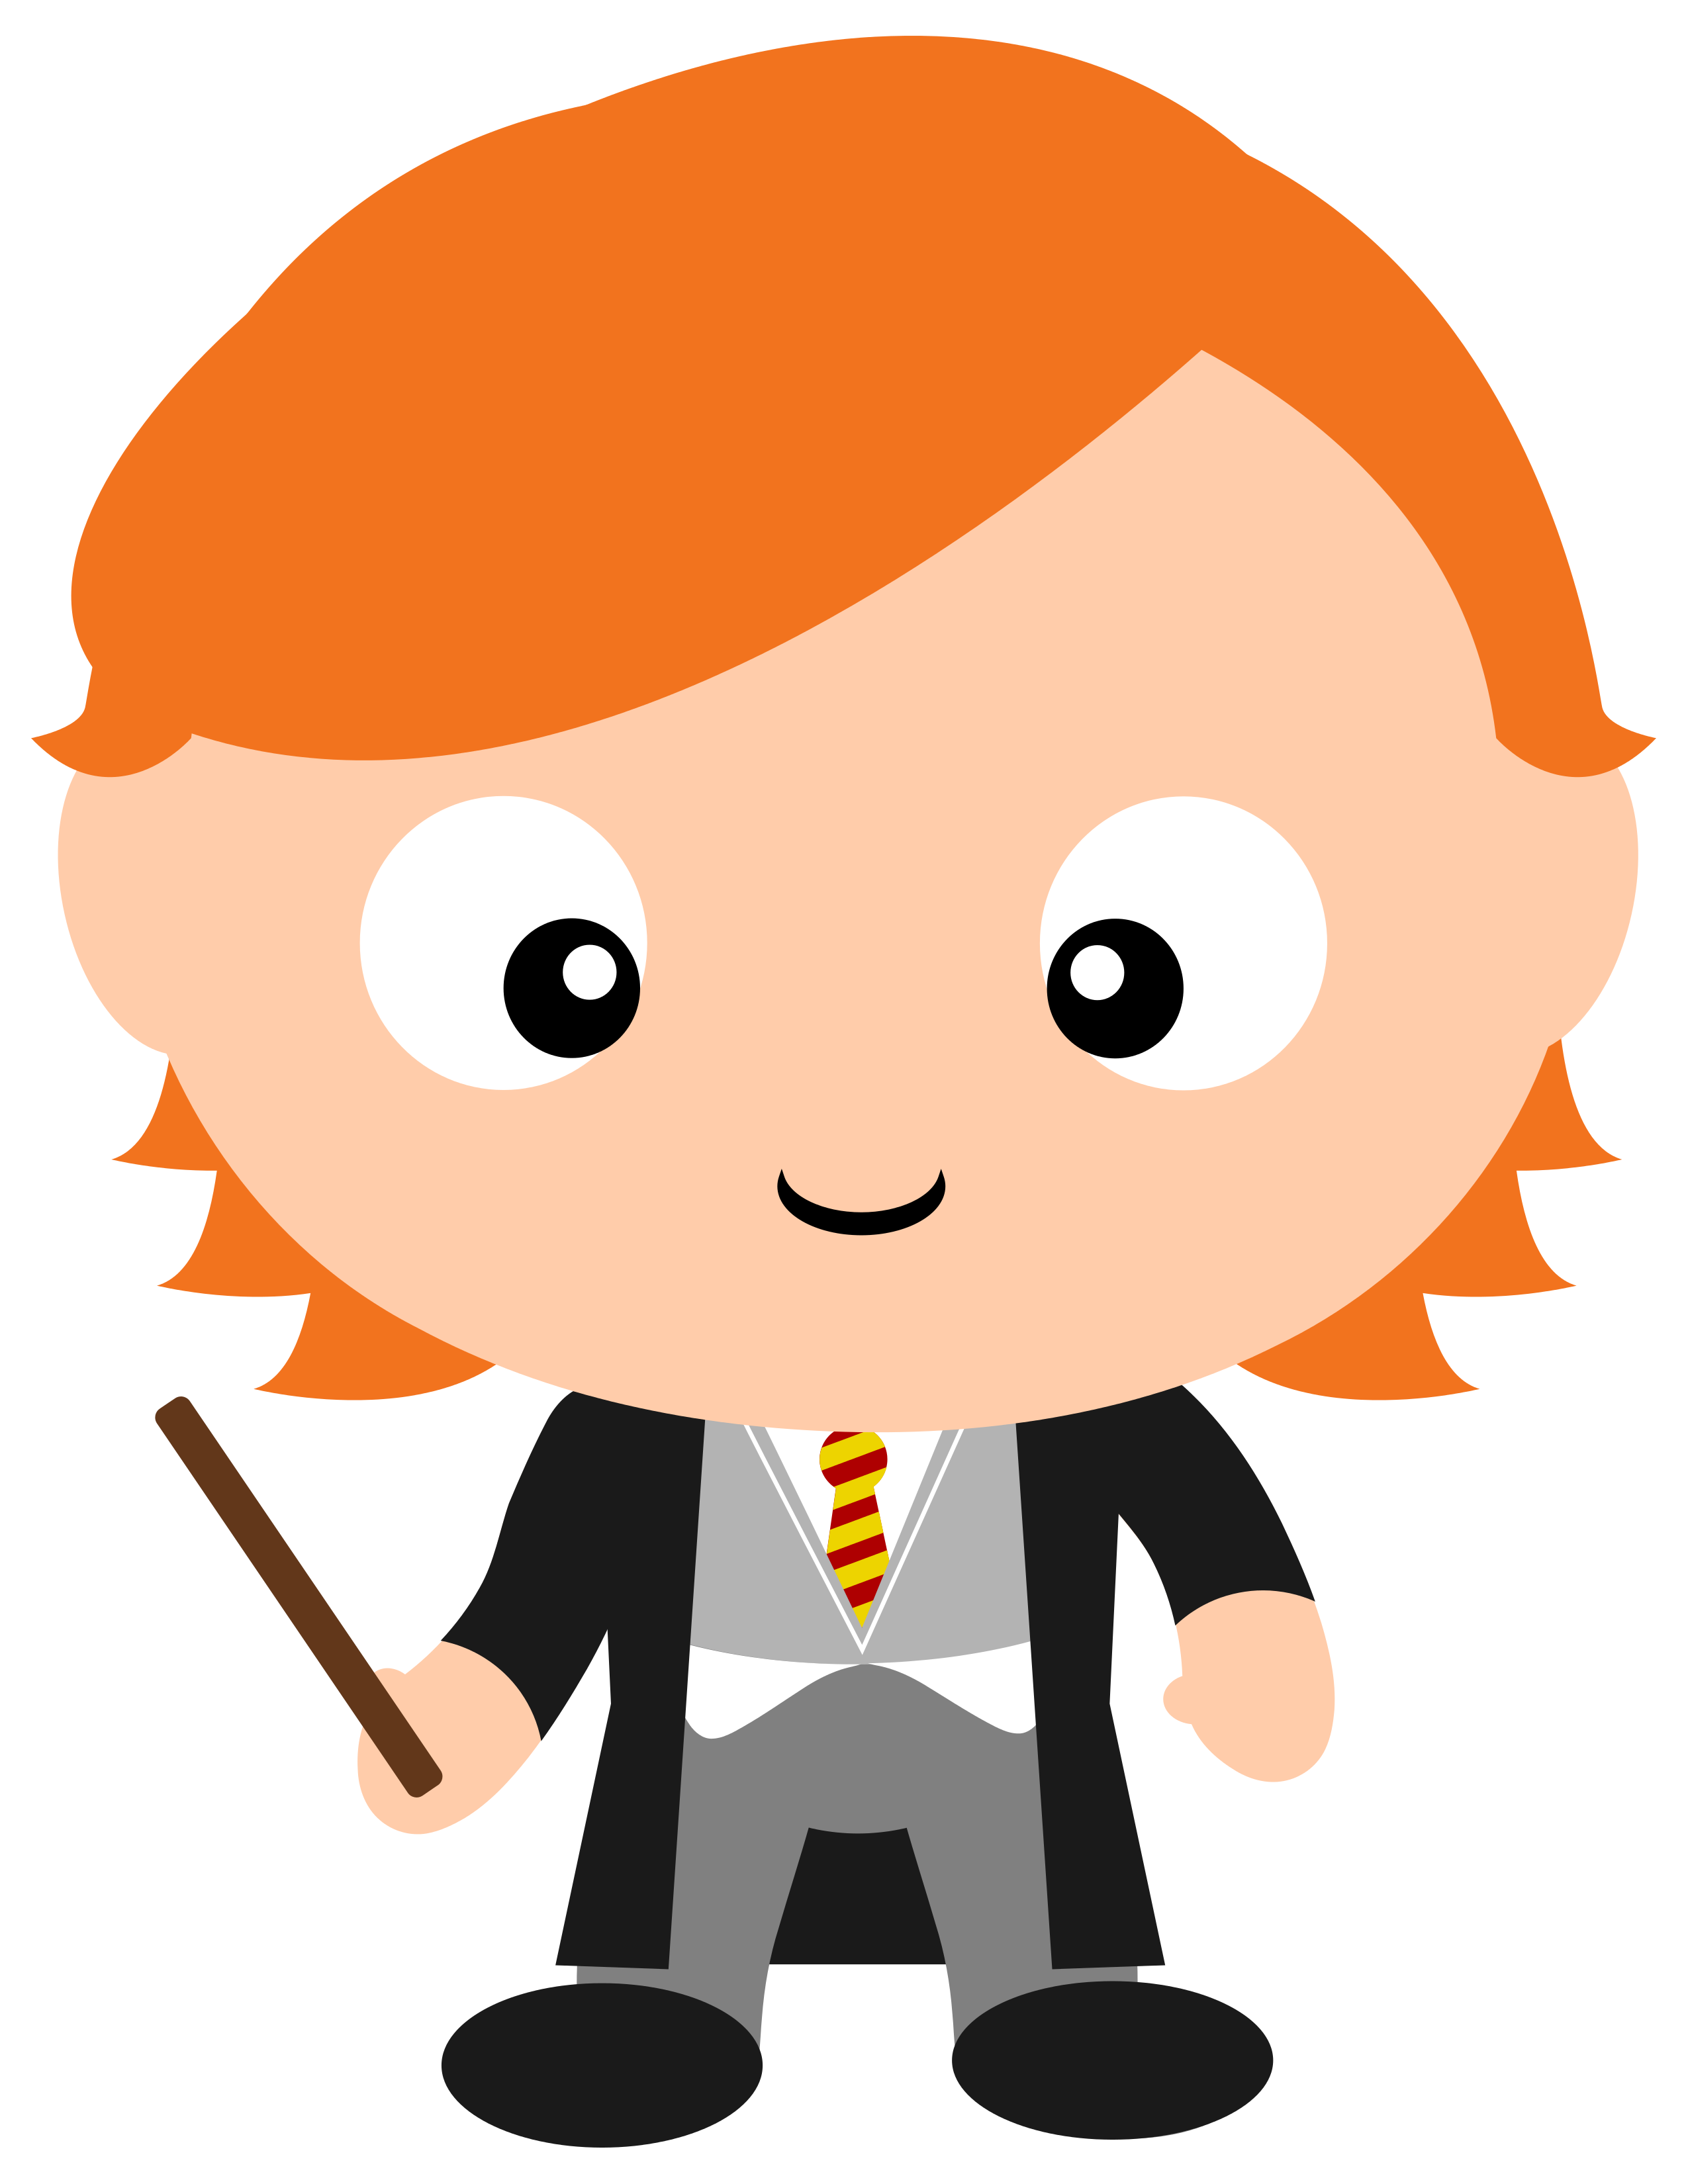 Magical book diary clipart graphic royalty free Is it Fred or George Weasley? Check out all the other Harry Potter ... graphic royalty free